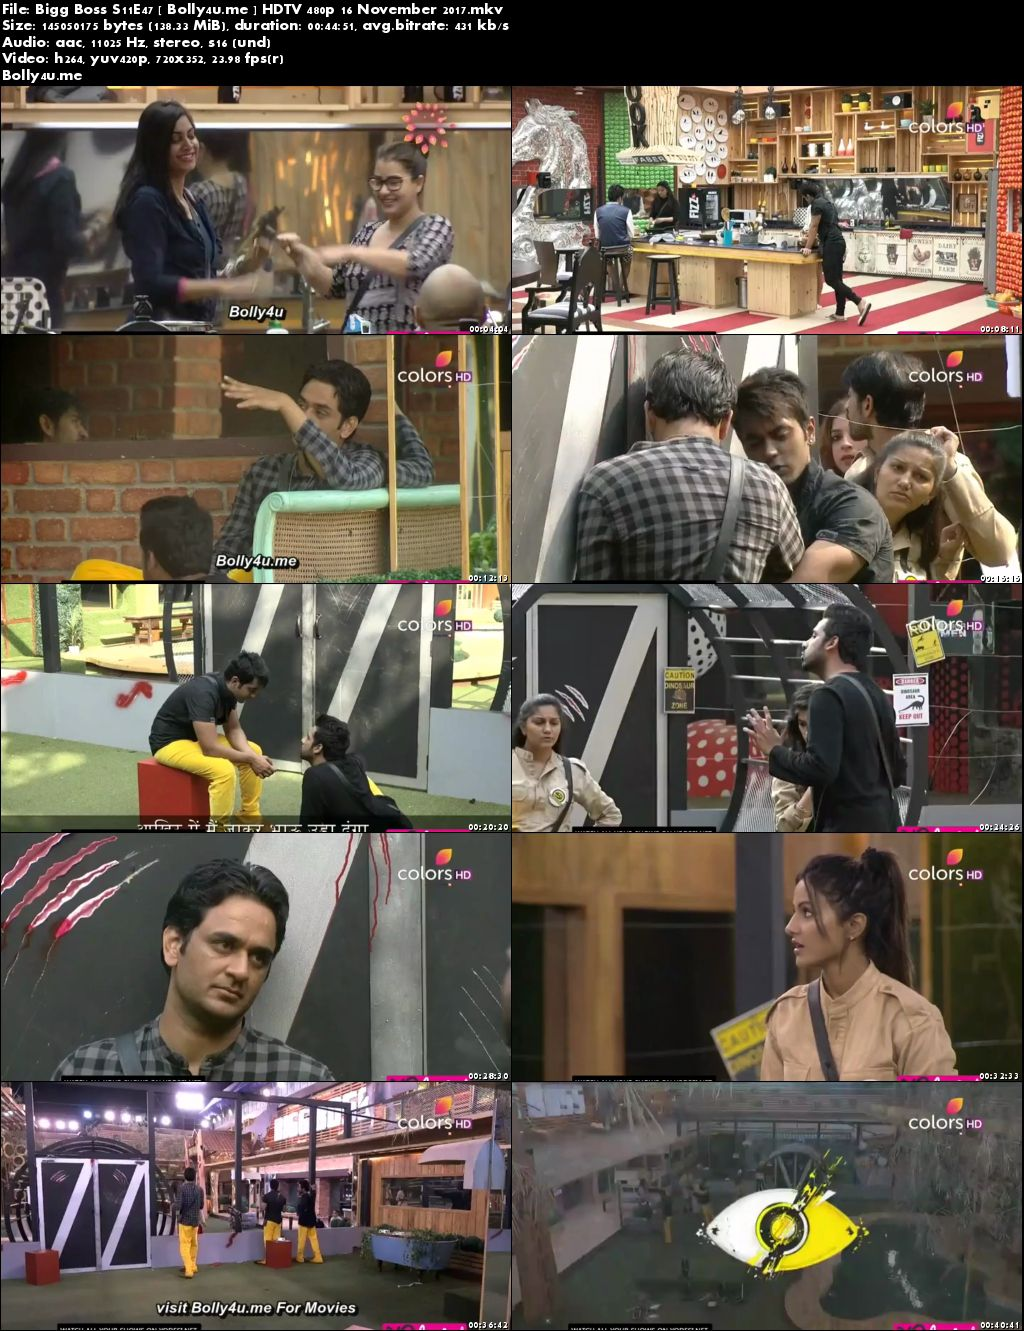 Bigg Boss S11E47 HDTV 140MB 480p 16 November 2017 Download